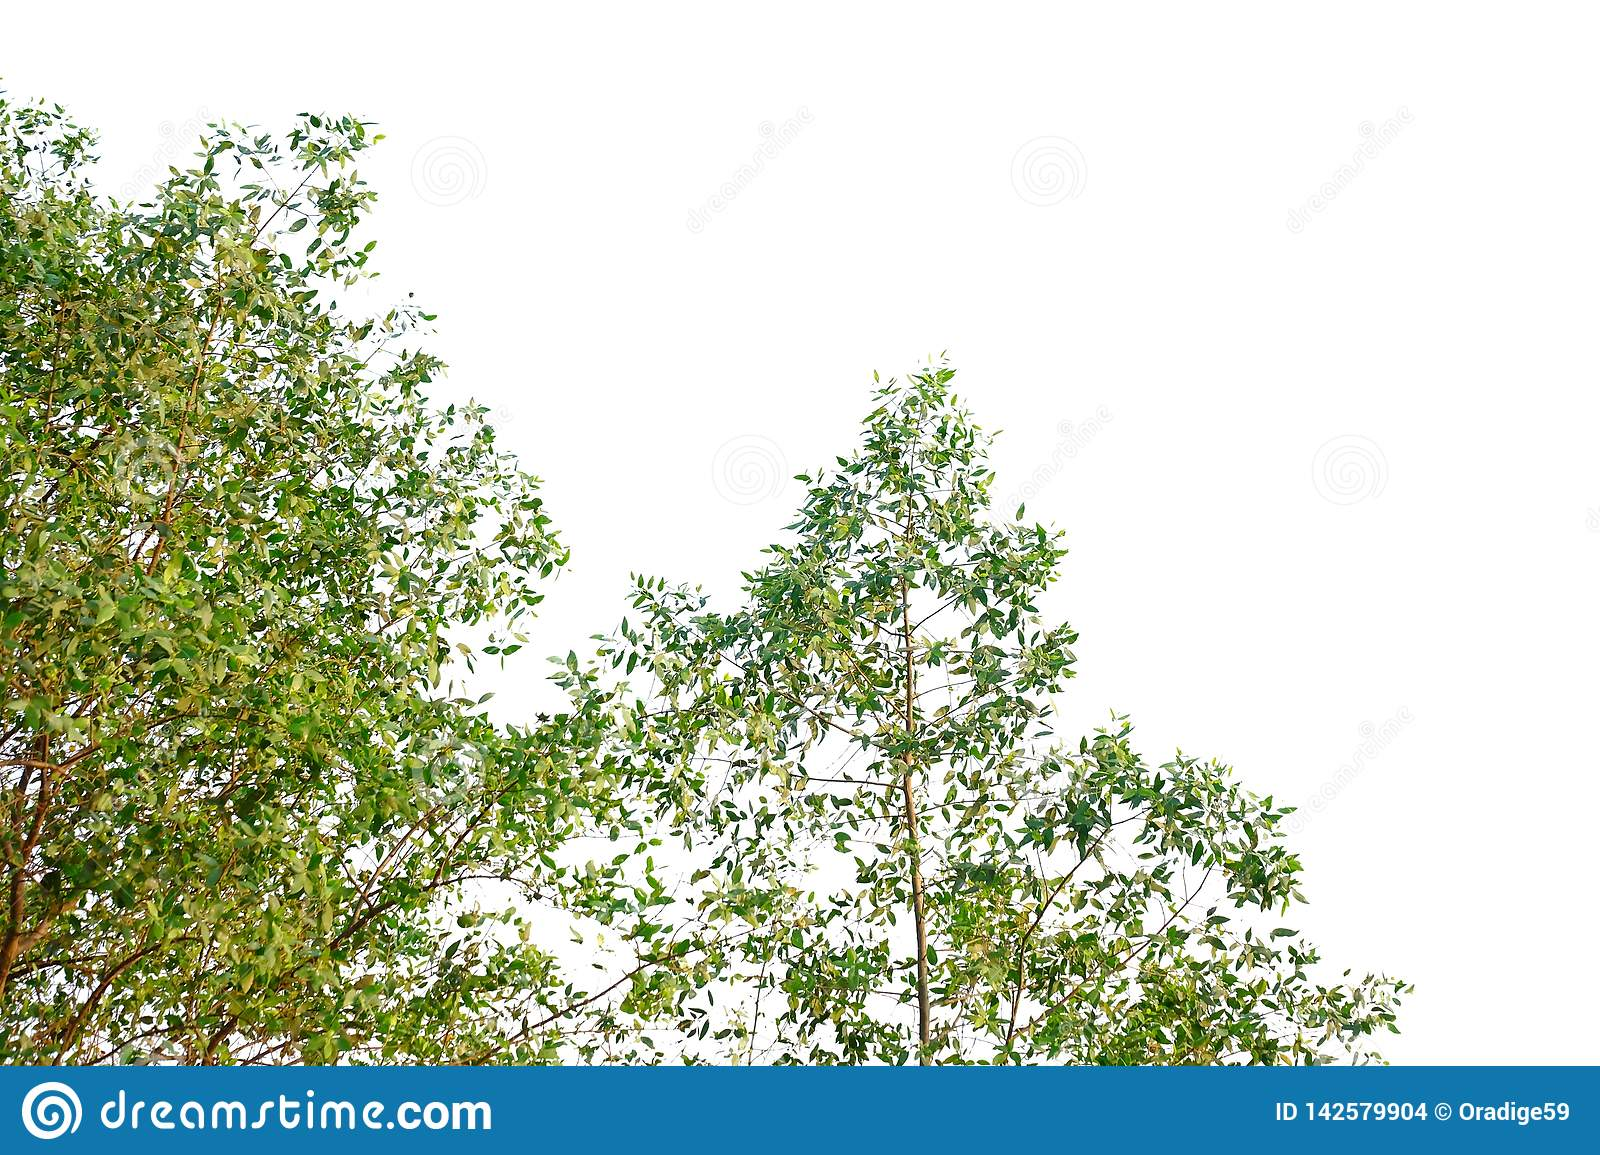 Tropical tree leaves with branches on white isolated background